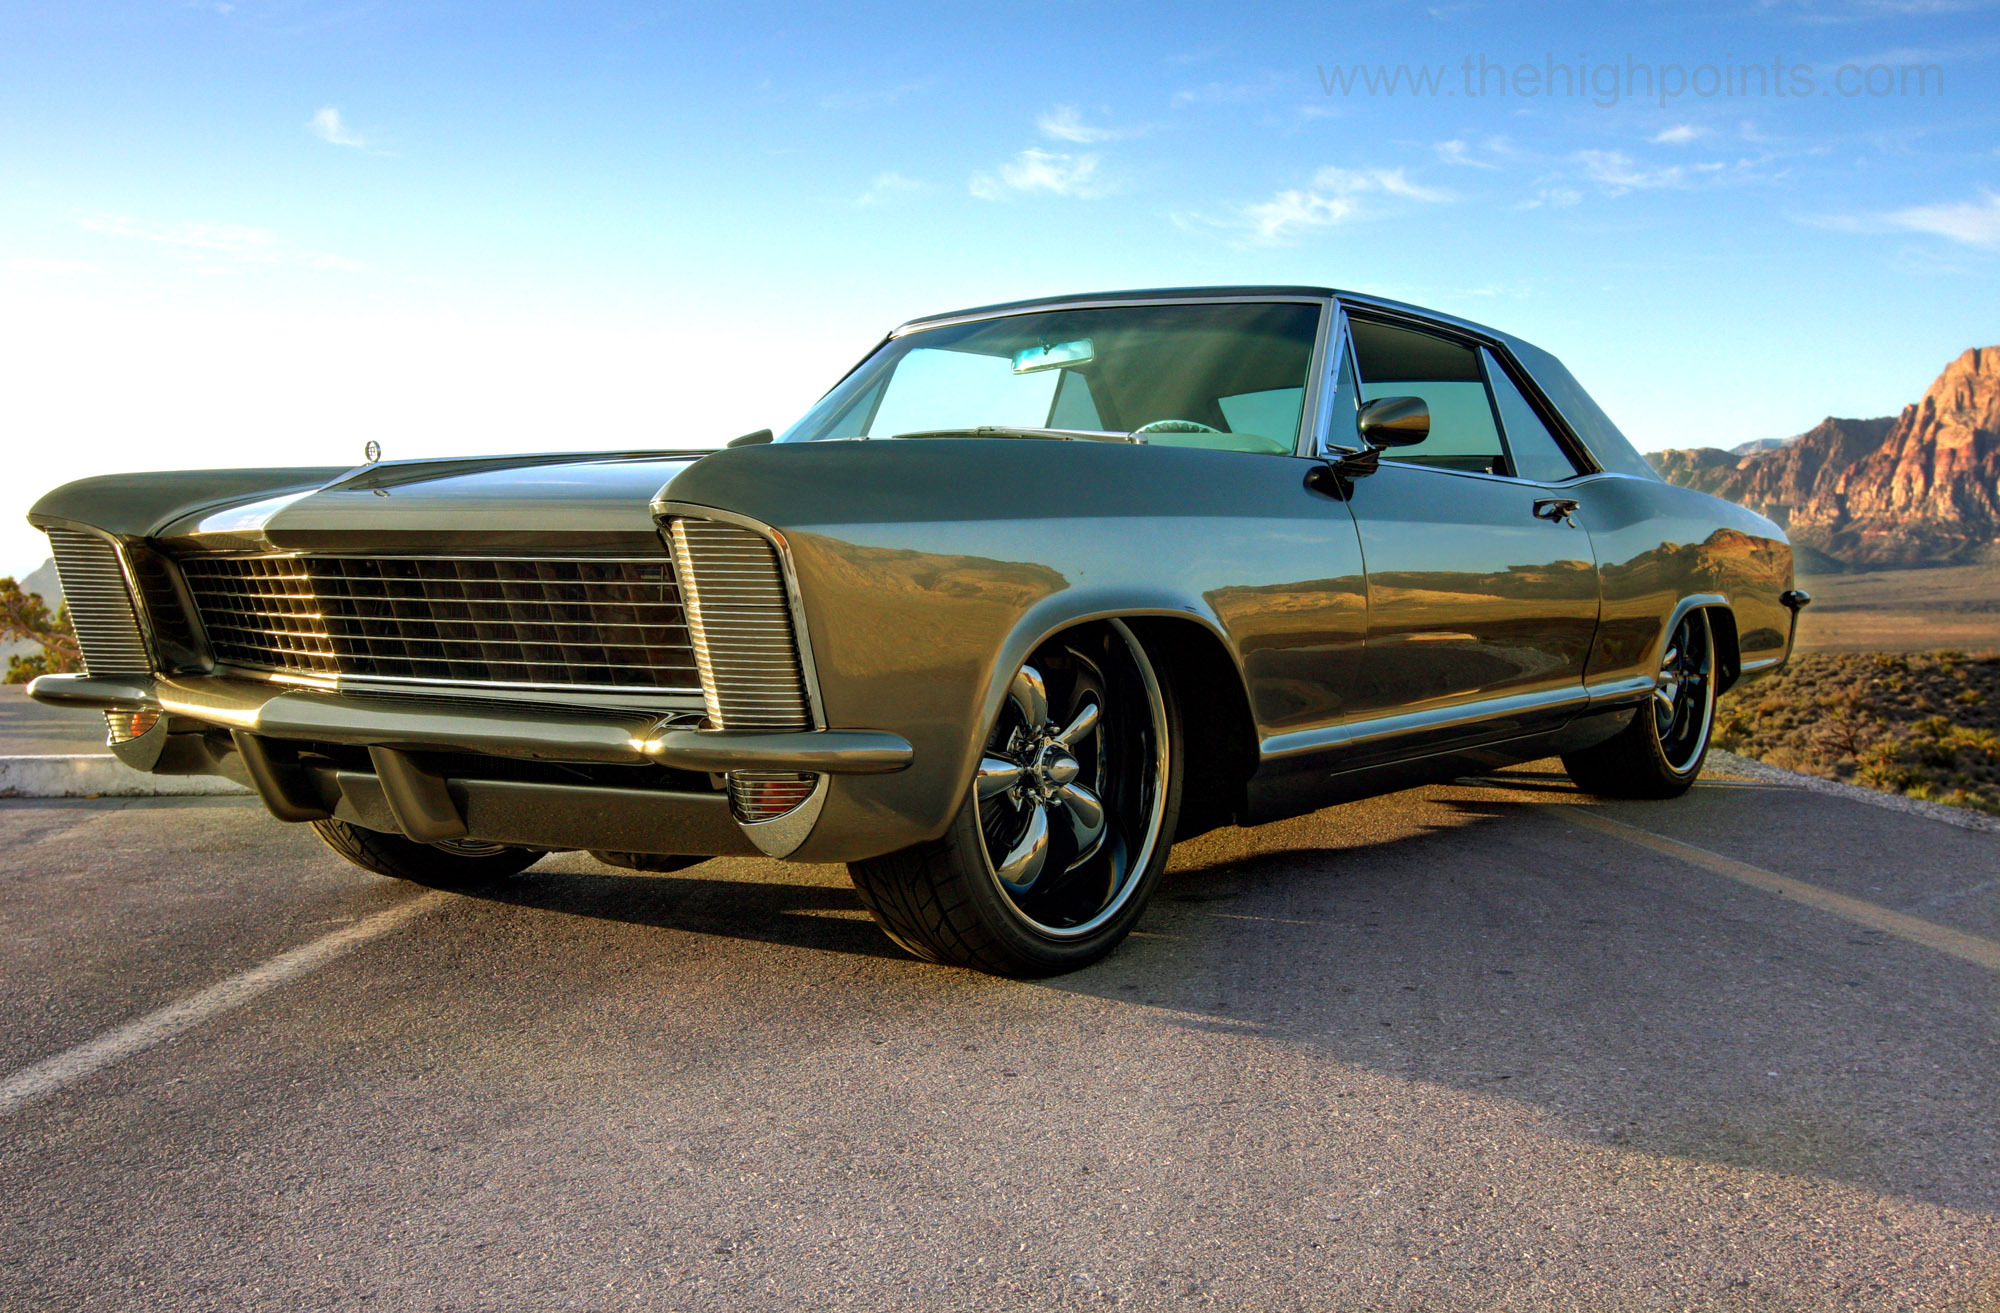 1965 Buick Riviera Images Pictures And Videos